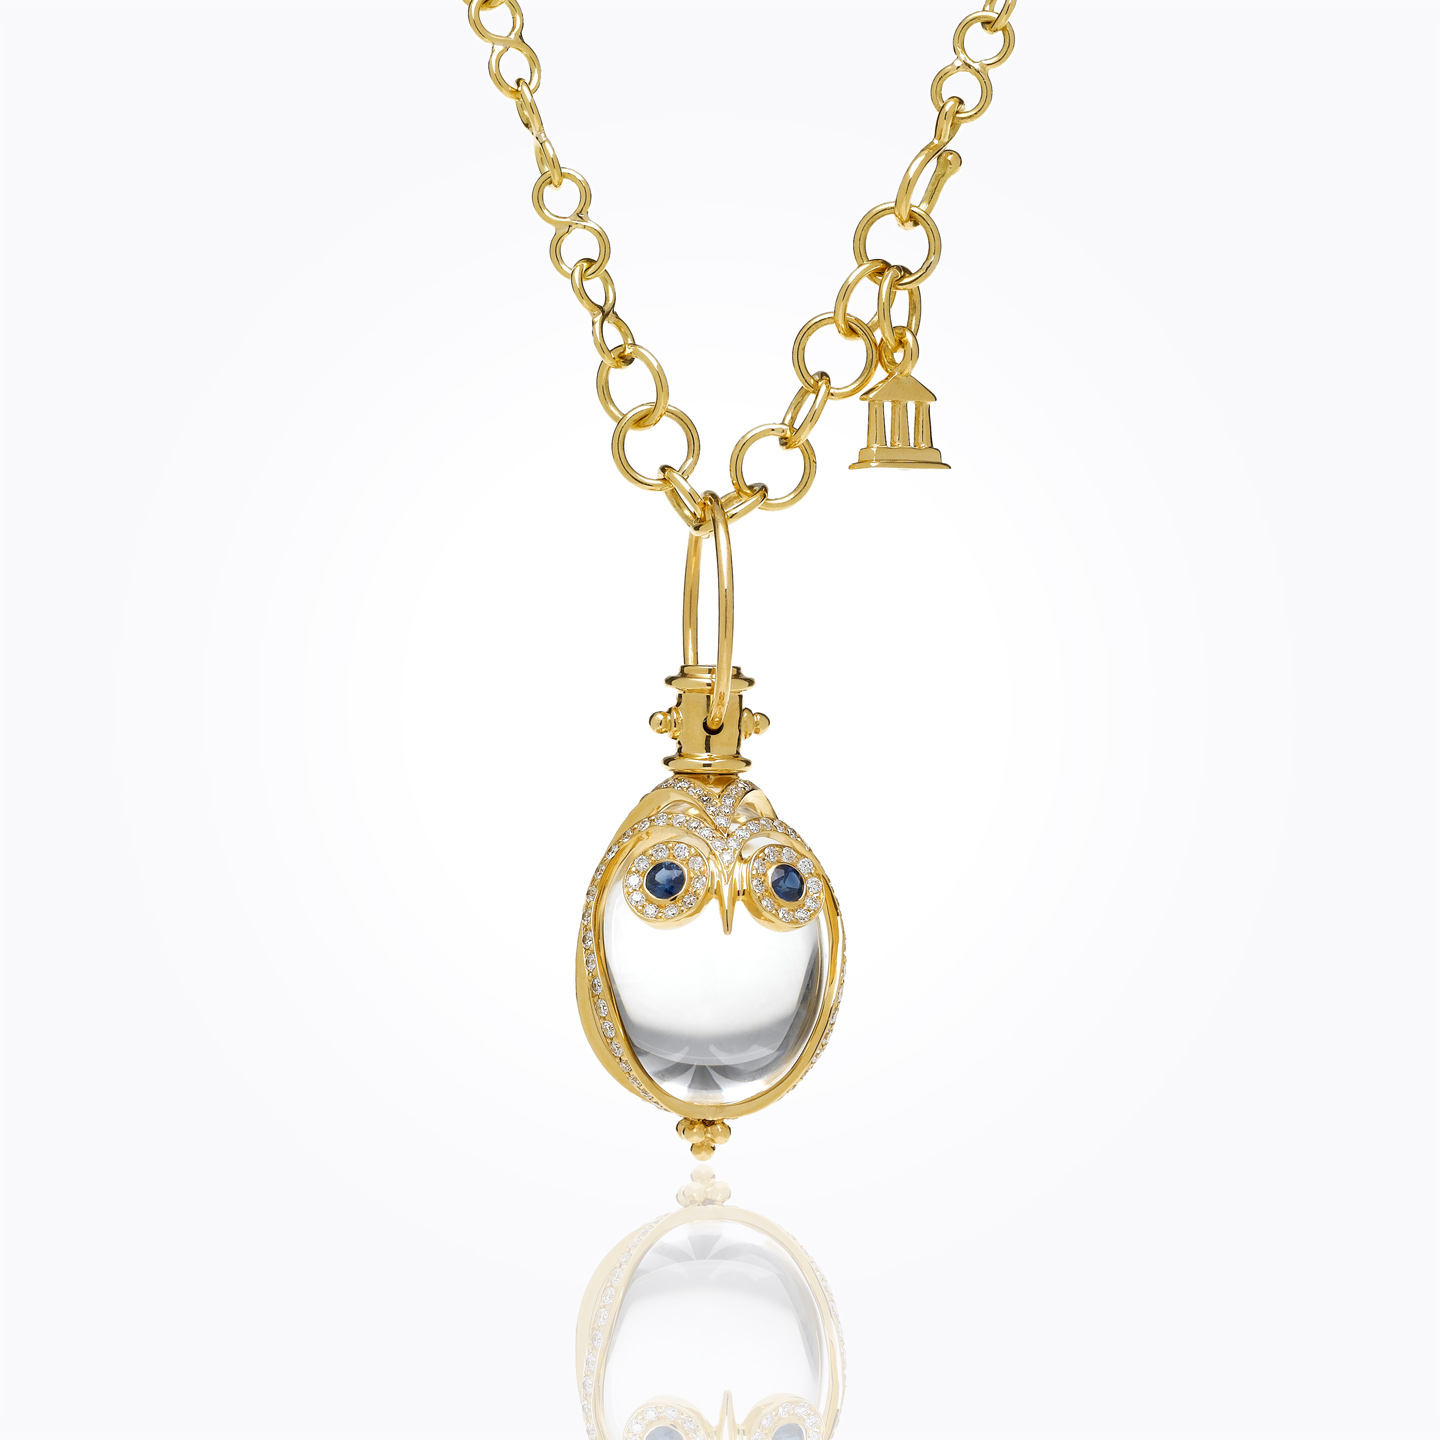 18K Owl Amulet with blue sapphire and diamond pave - alternate